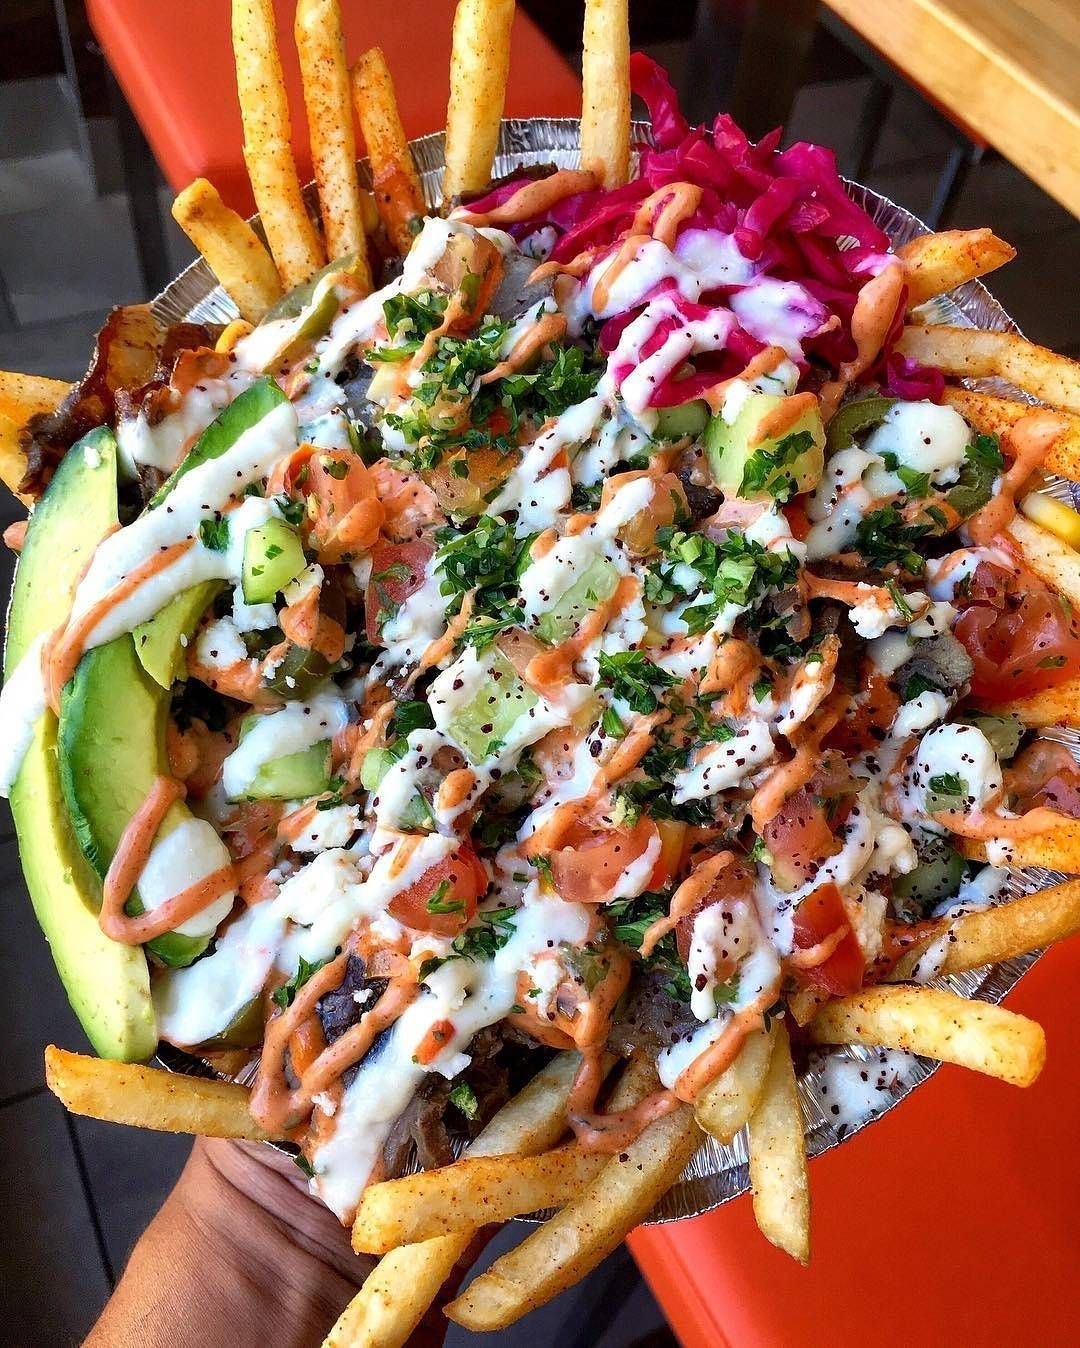 Turkish Street Fries: fresh fries topped with grilled onions, beef Döner kebab, shepherd's salad, corn, jalapeños, red cabbage, parsley, feta cheese, avocado and Döner G sauce  : @dailyfoodfeed /: @donerg #forkyeah